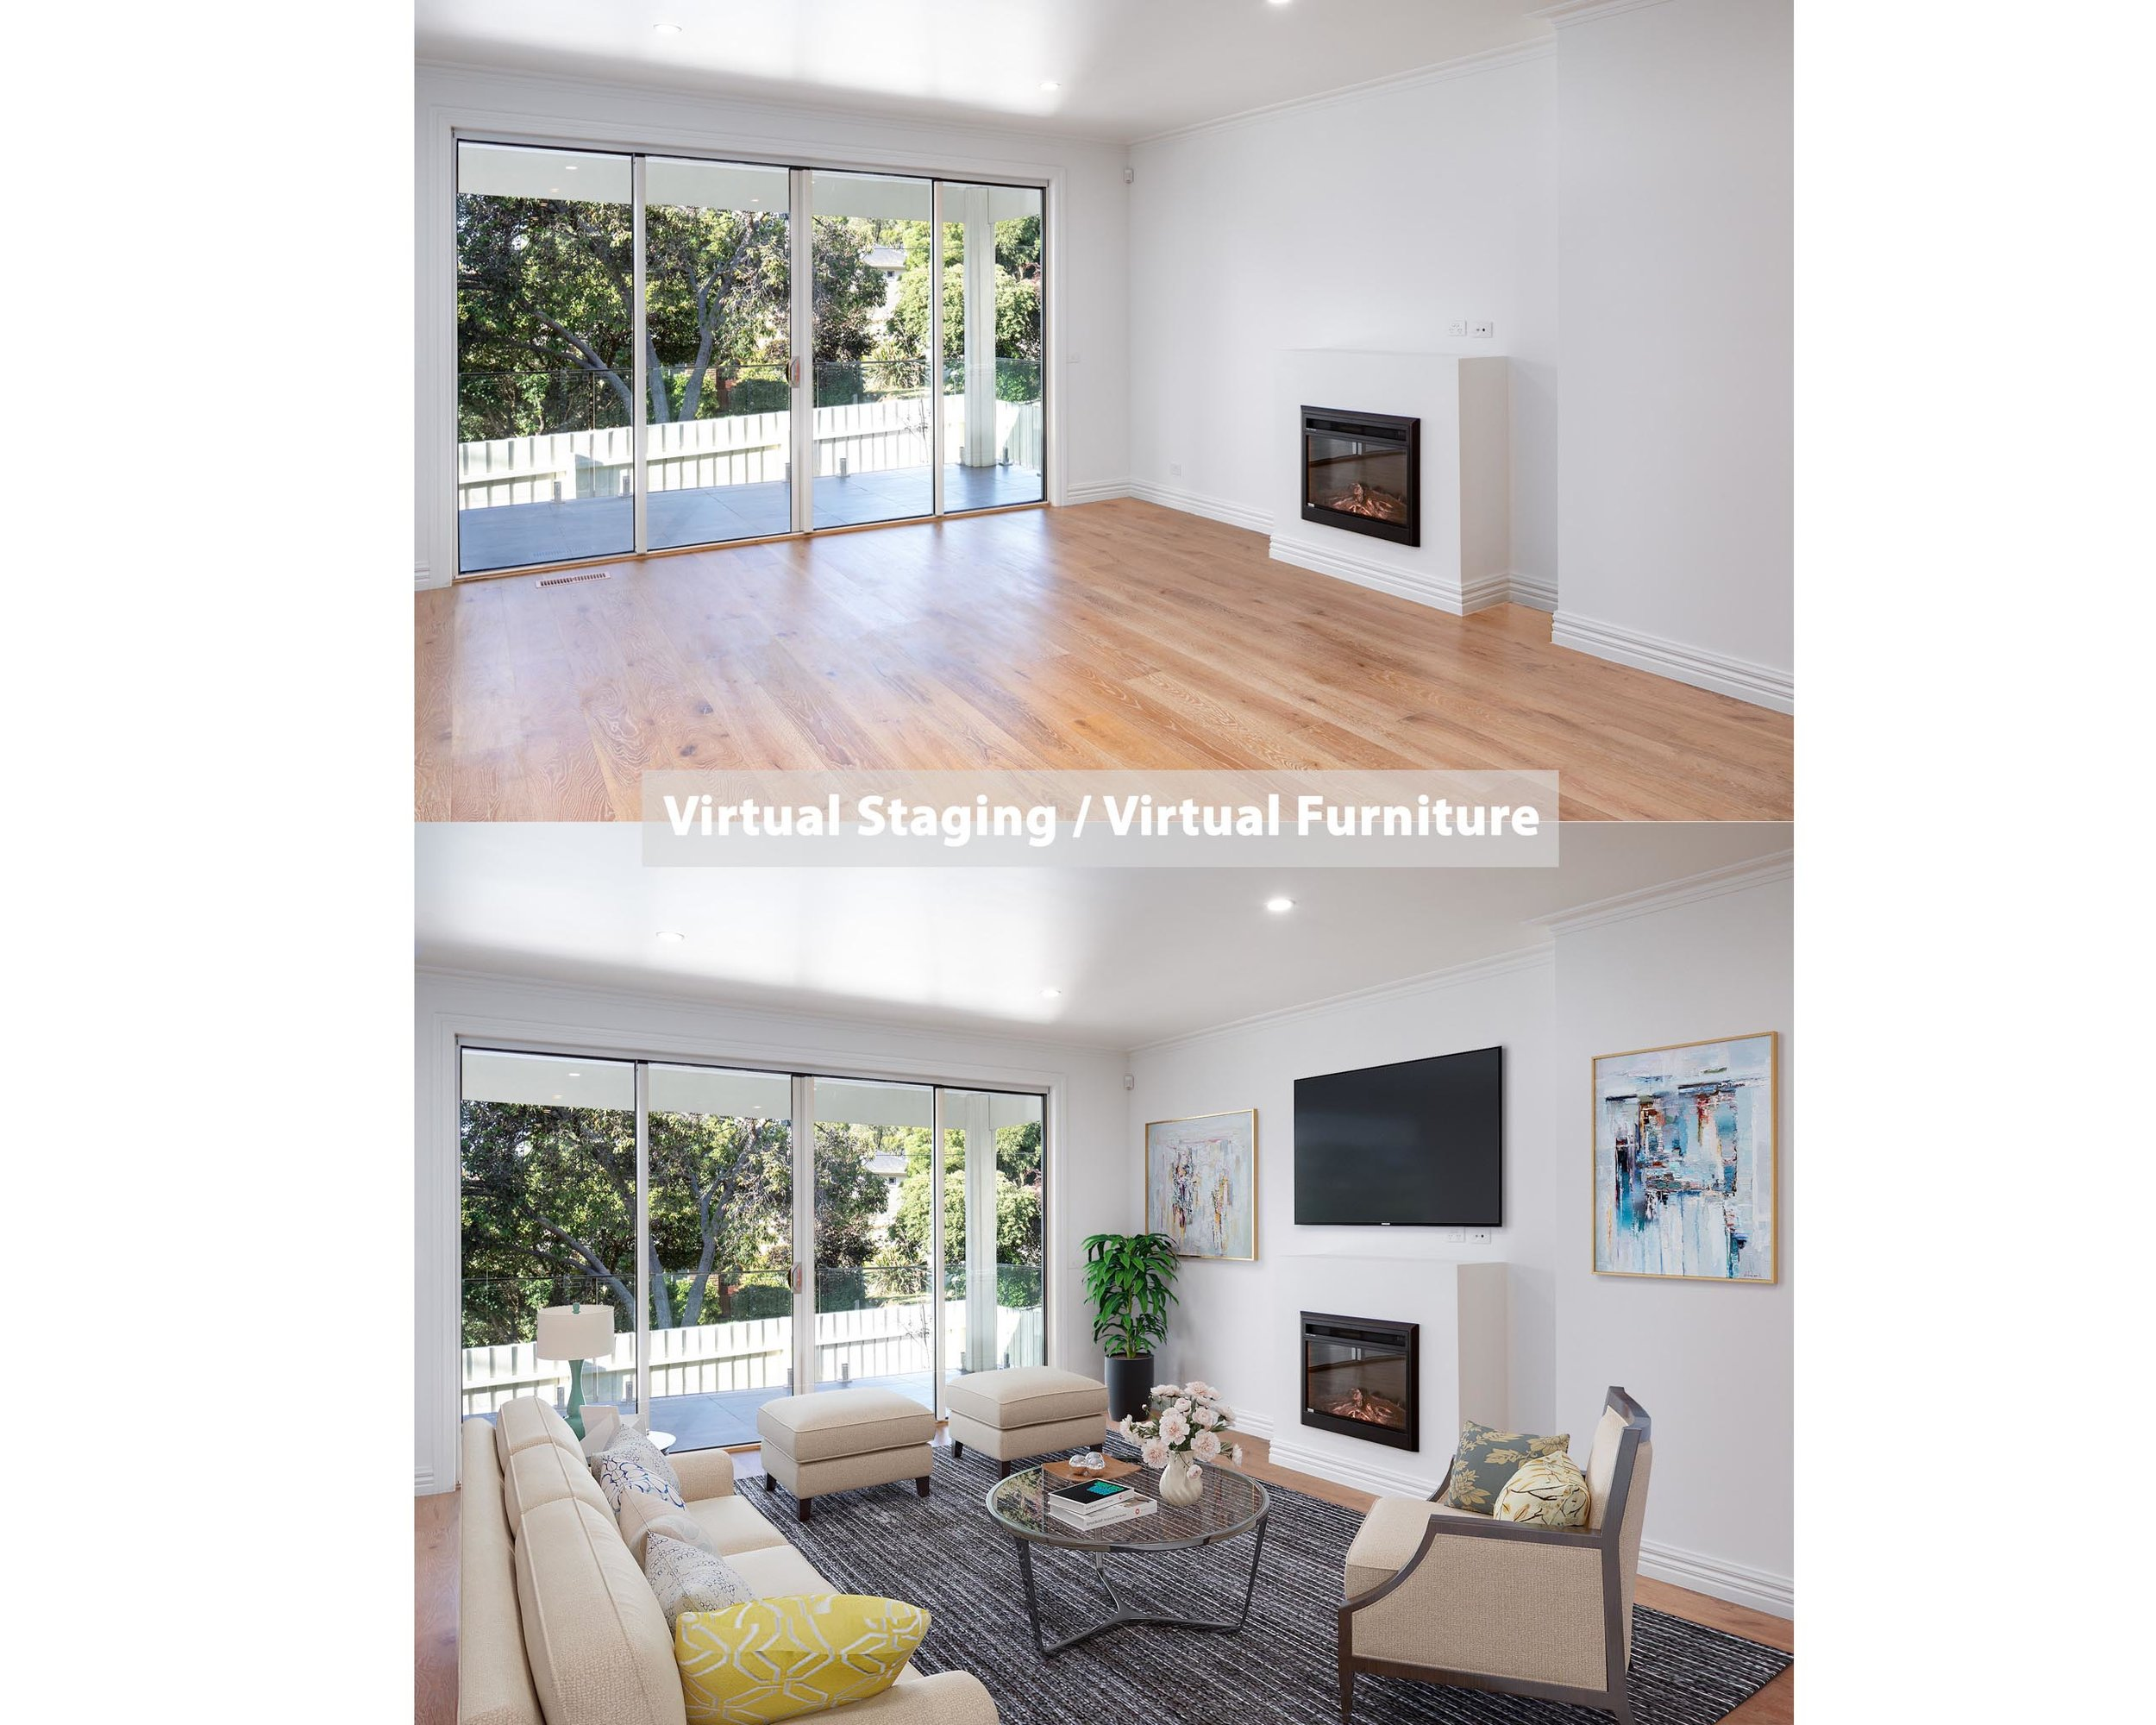 Virtual Staging copy.jpg